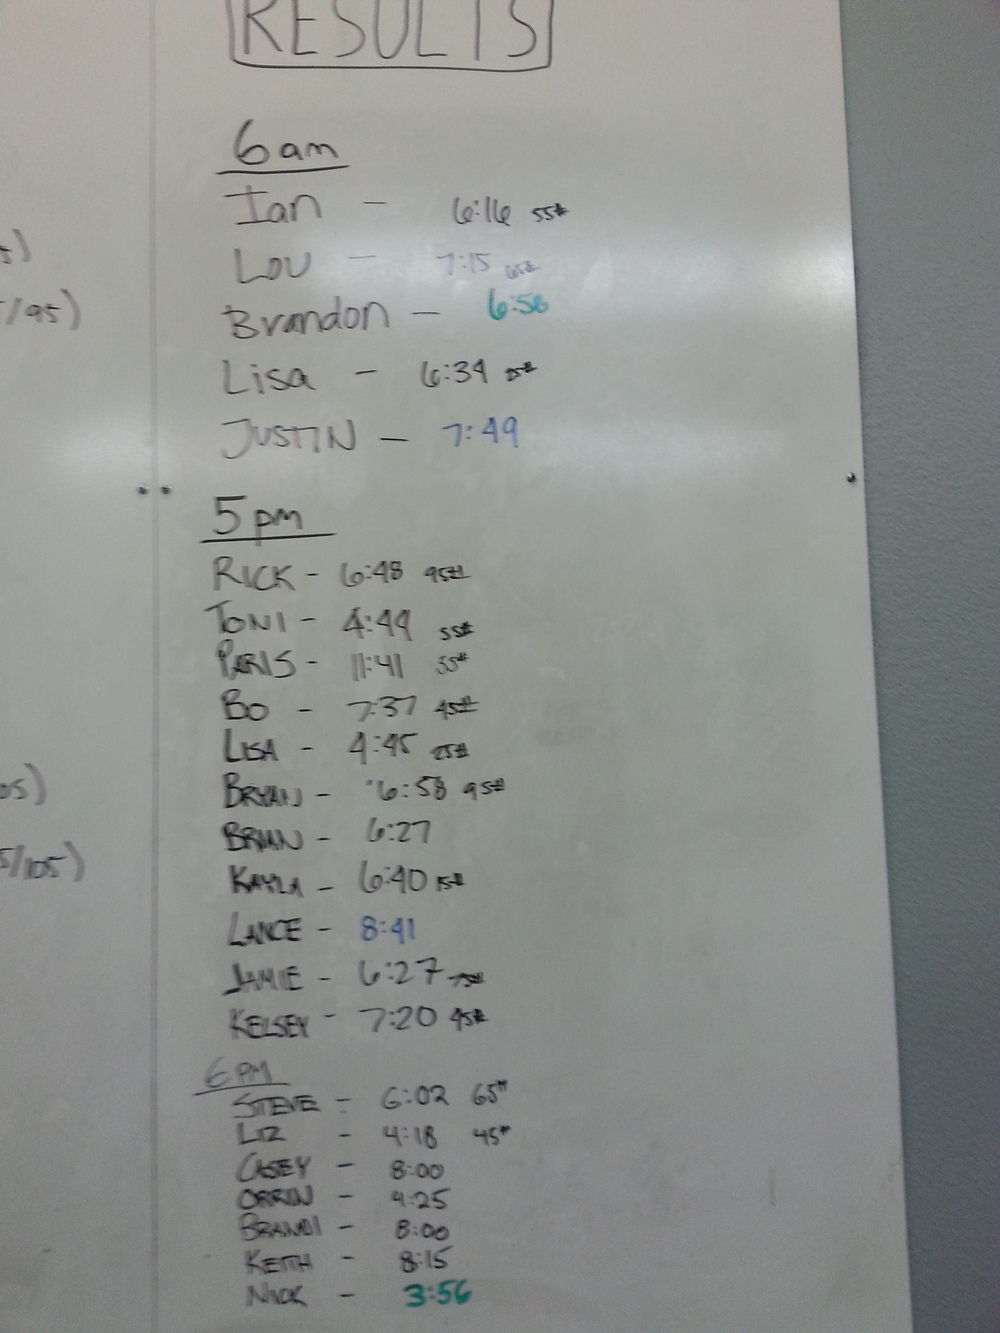 Awesome Times in today's WOD!